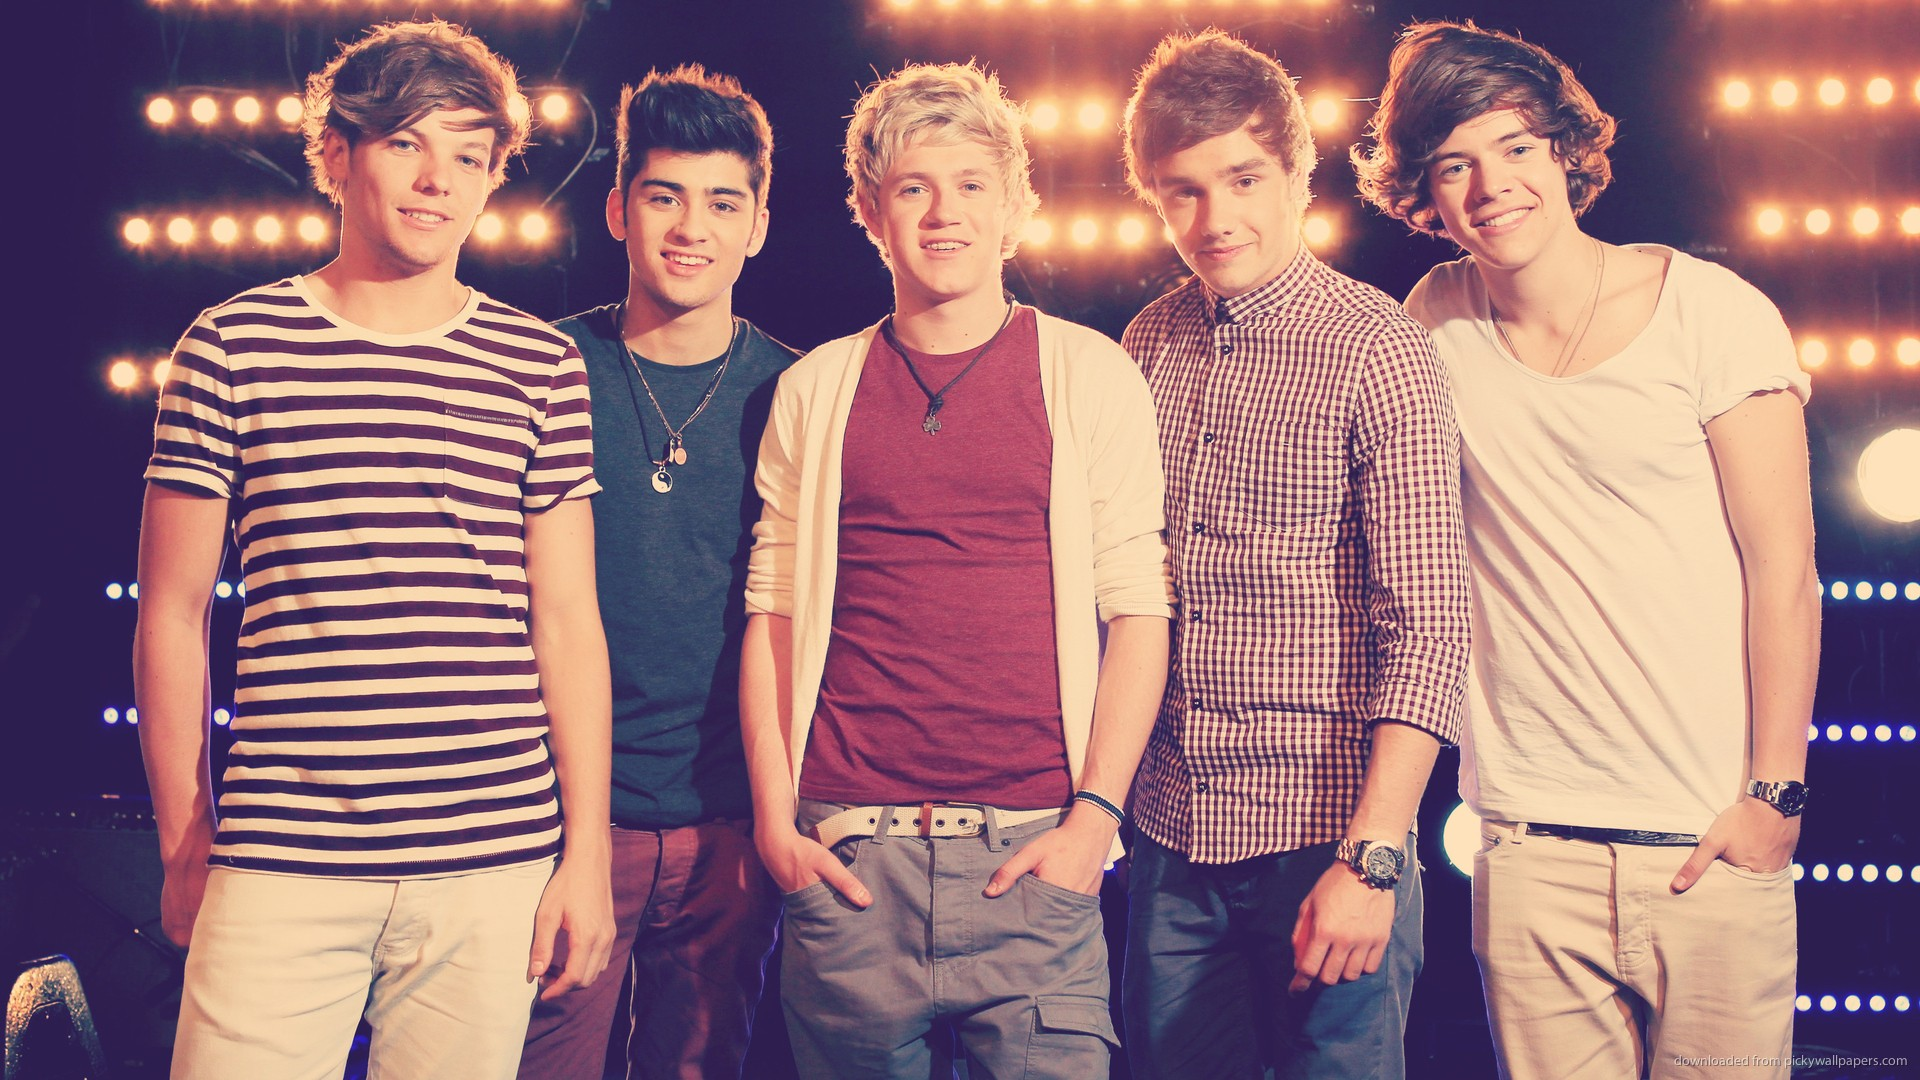 One Direction Wallpaper for Laptop - WallpaperSafari